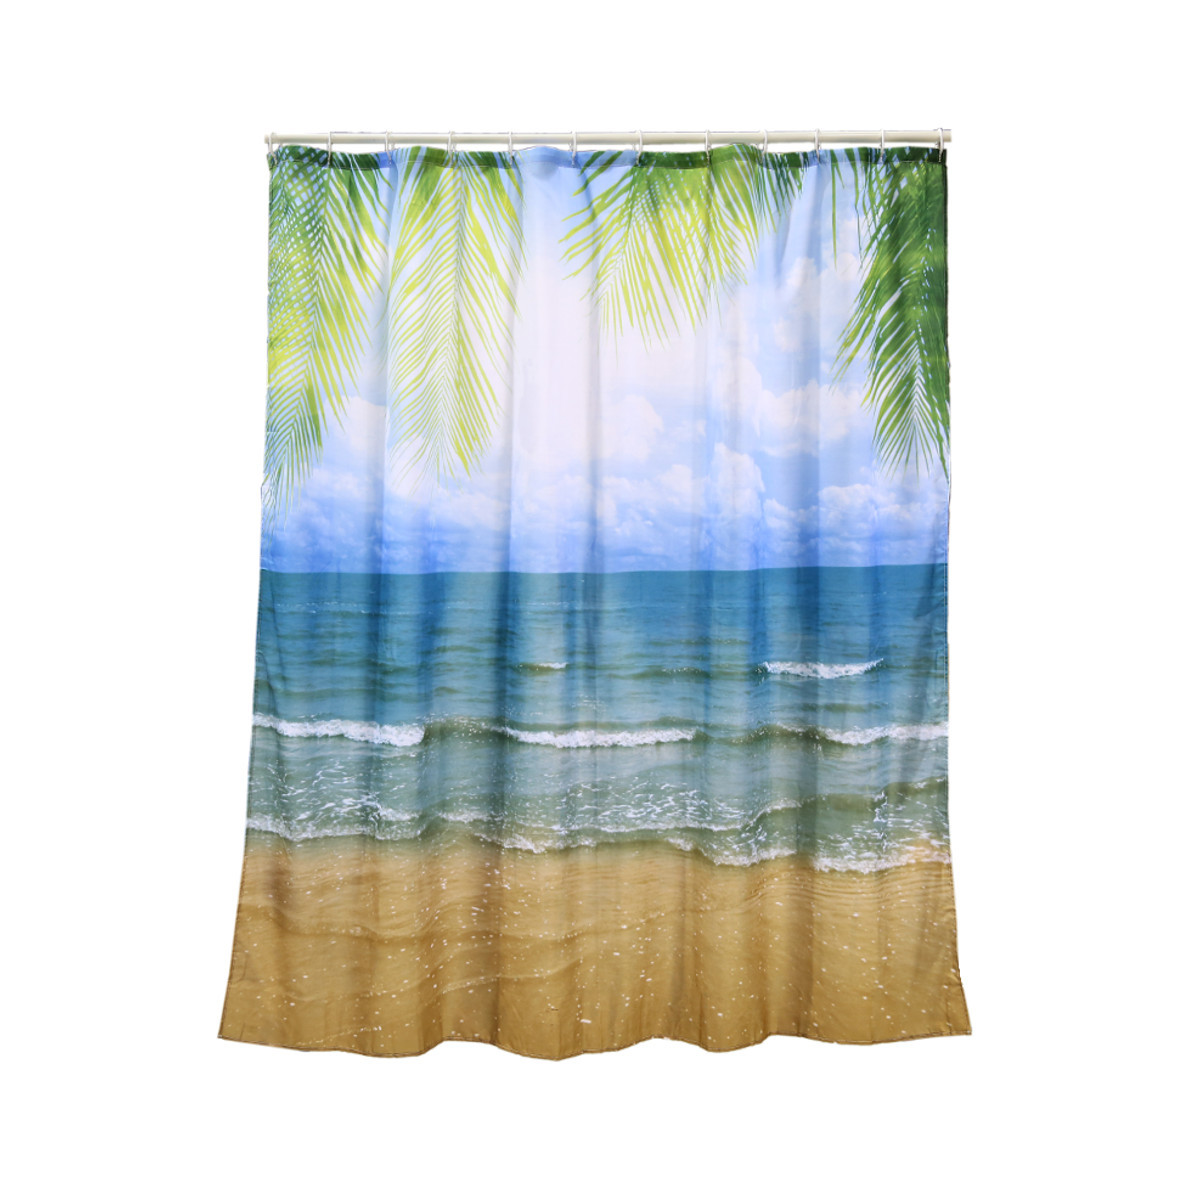 Shower curtain beach